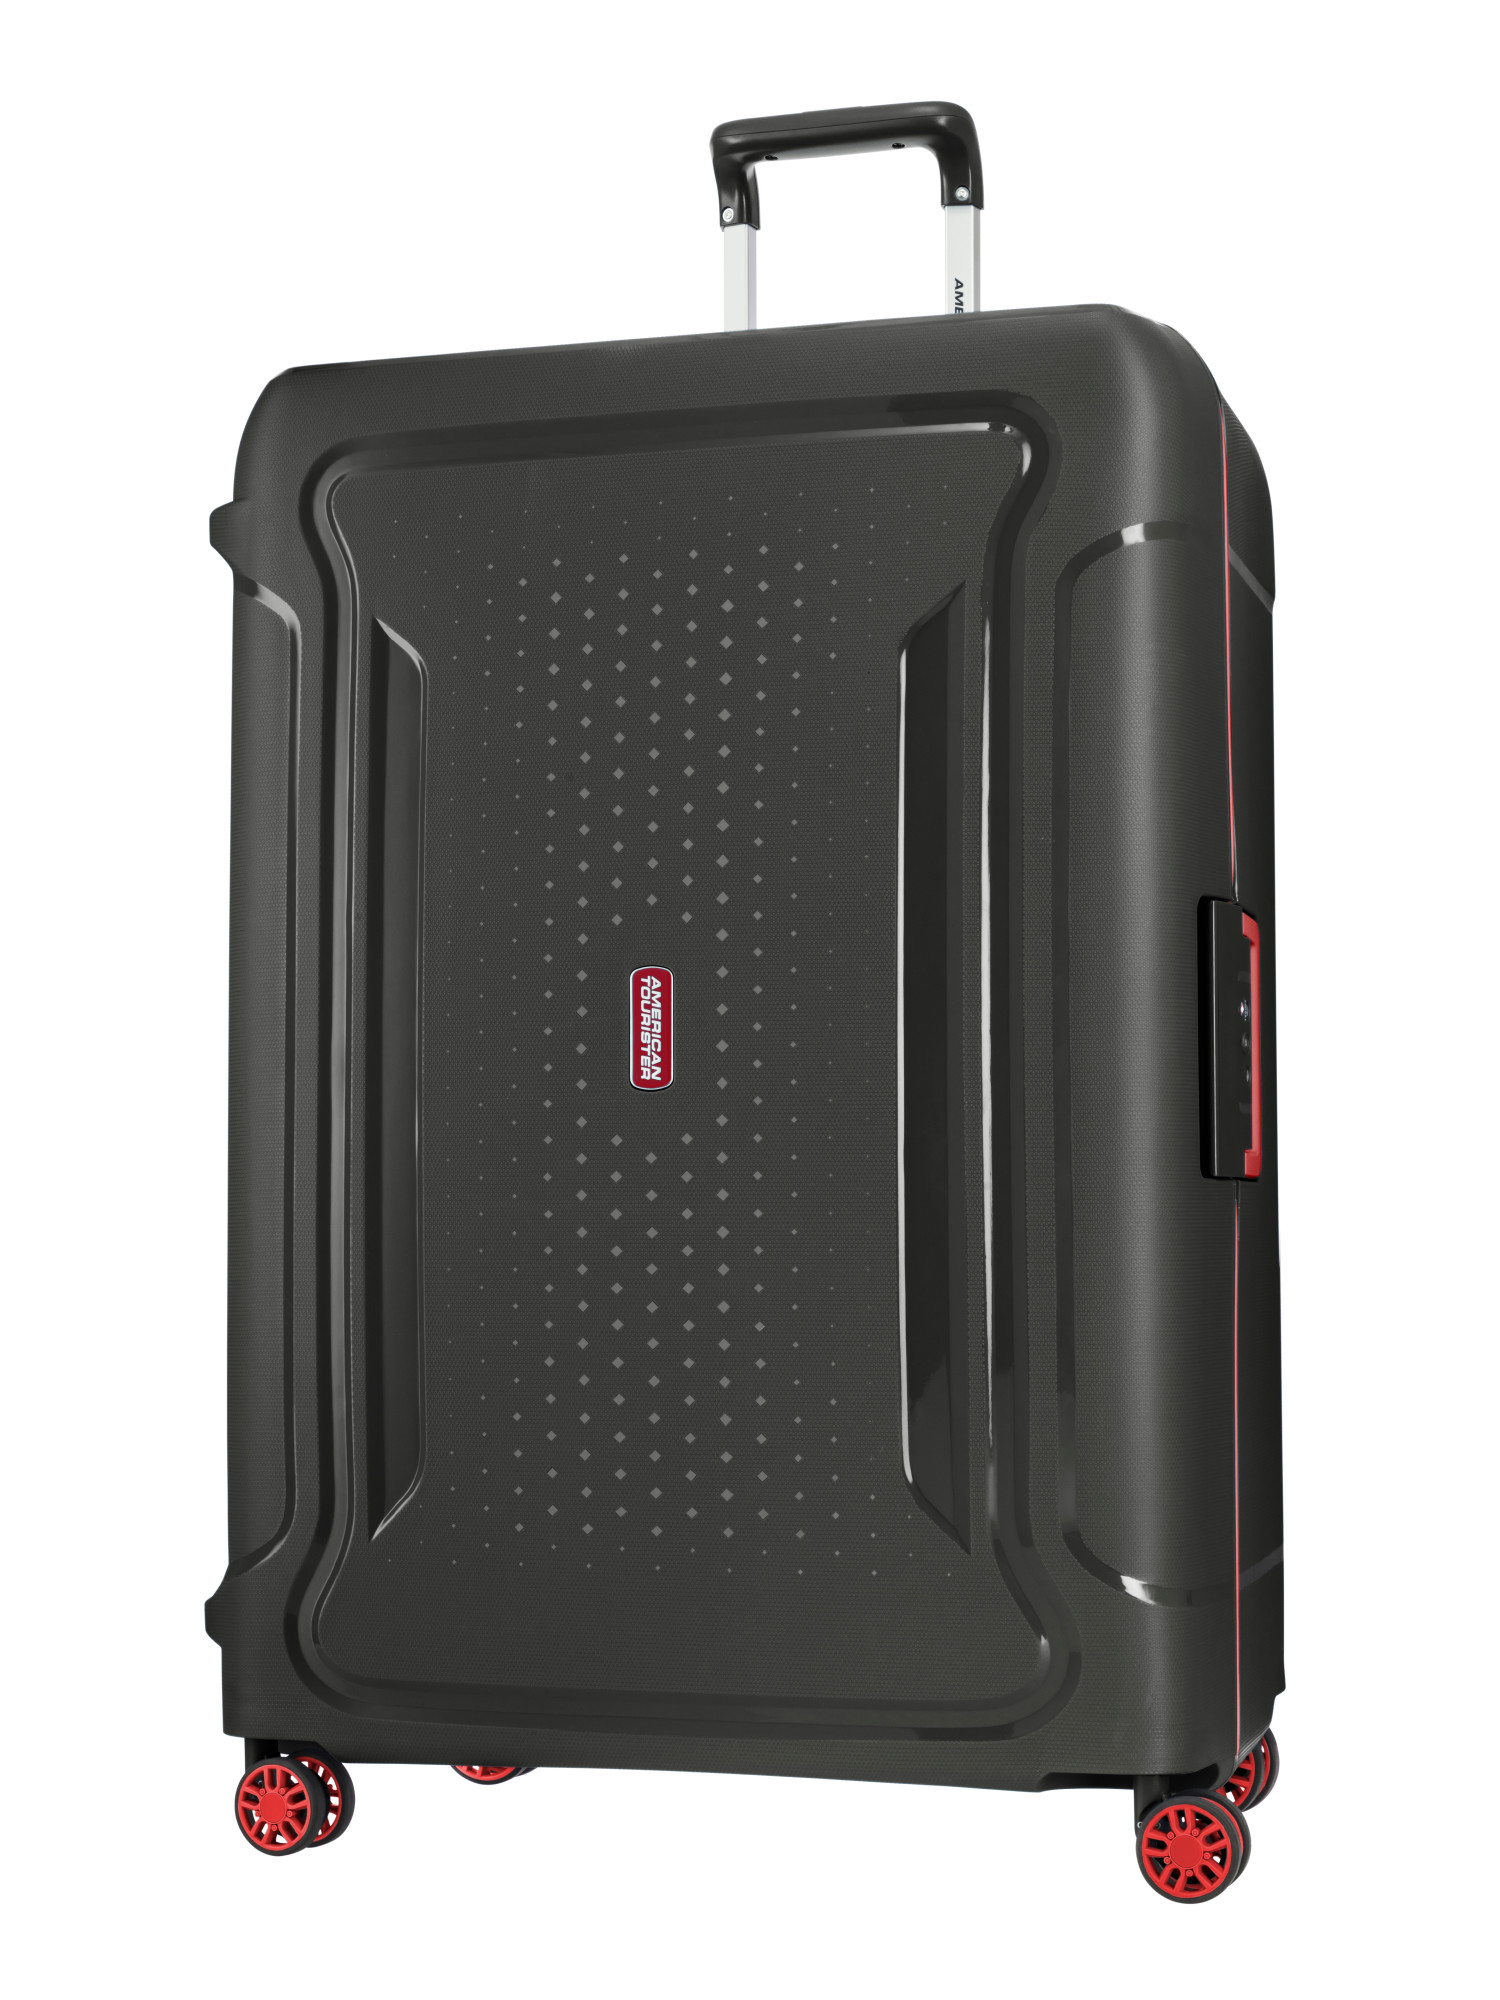 American Tourister Tribus 29'' Hardside Spinner Luggage